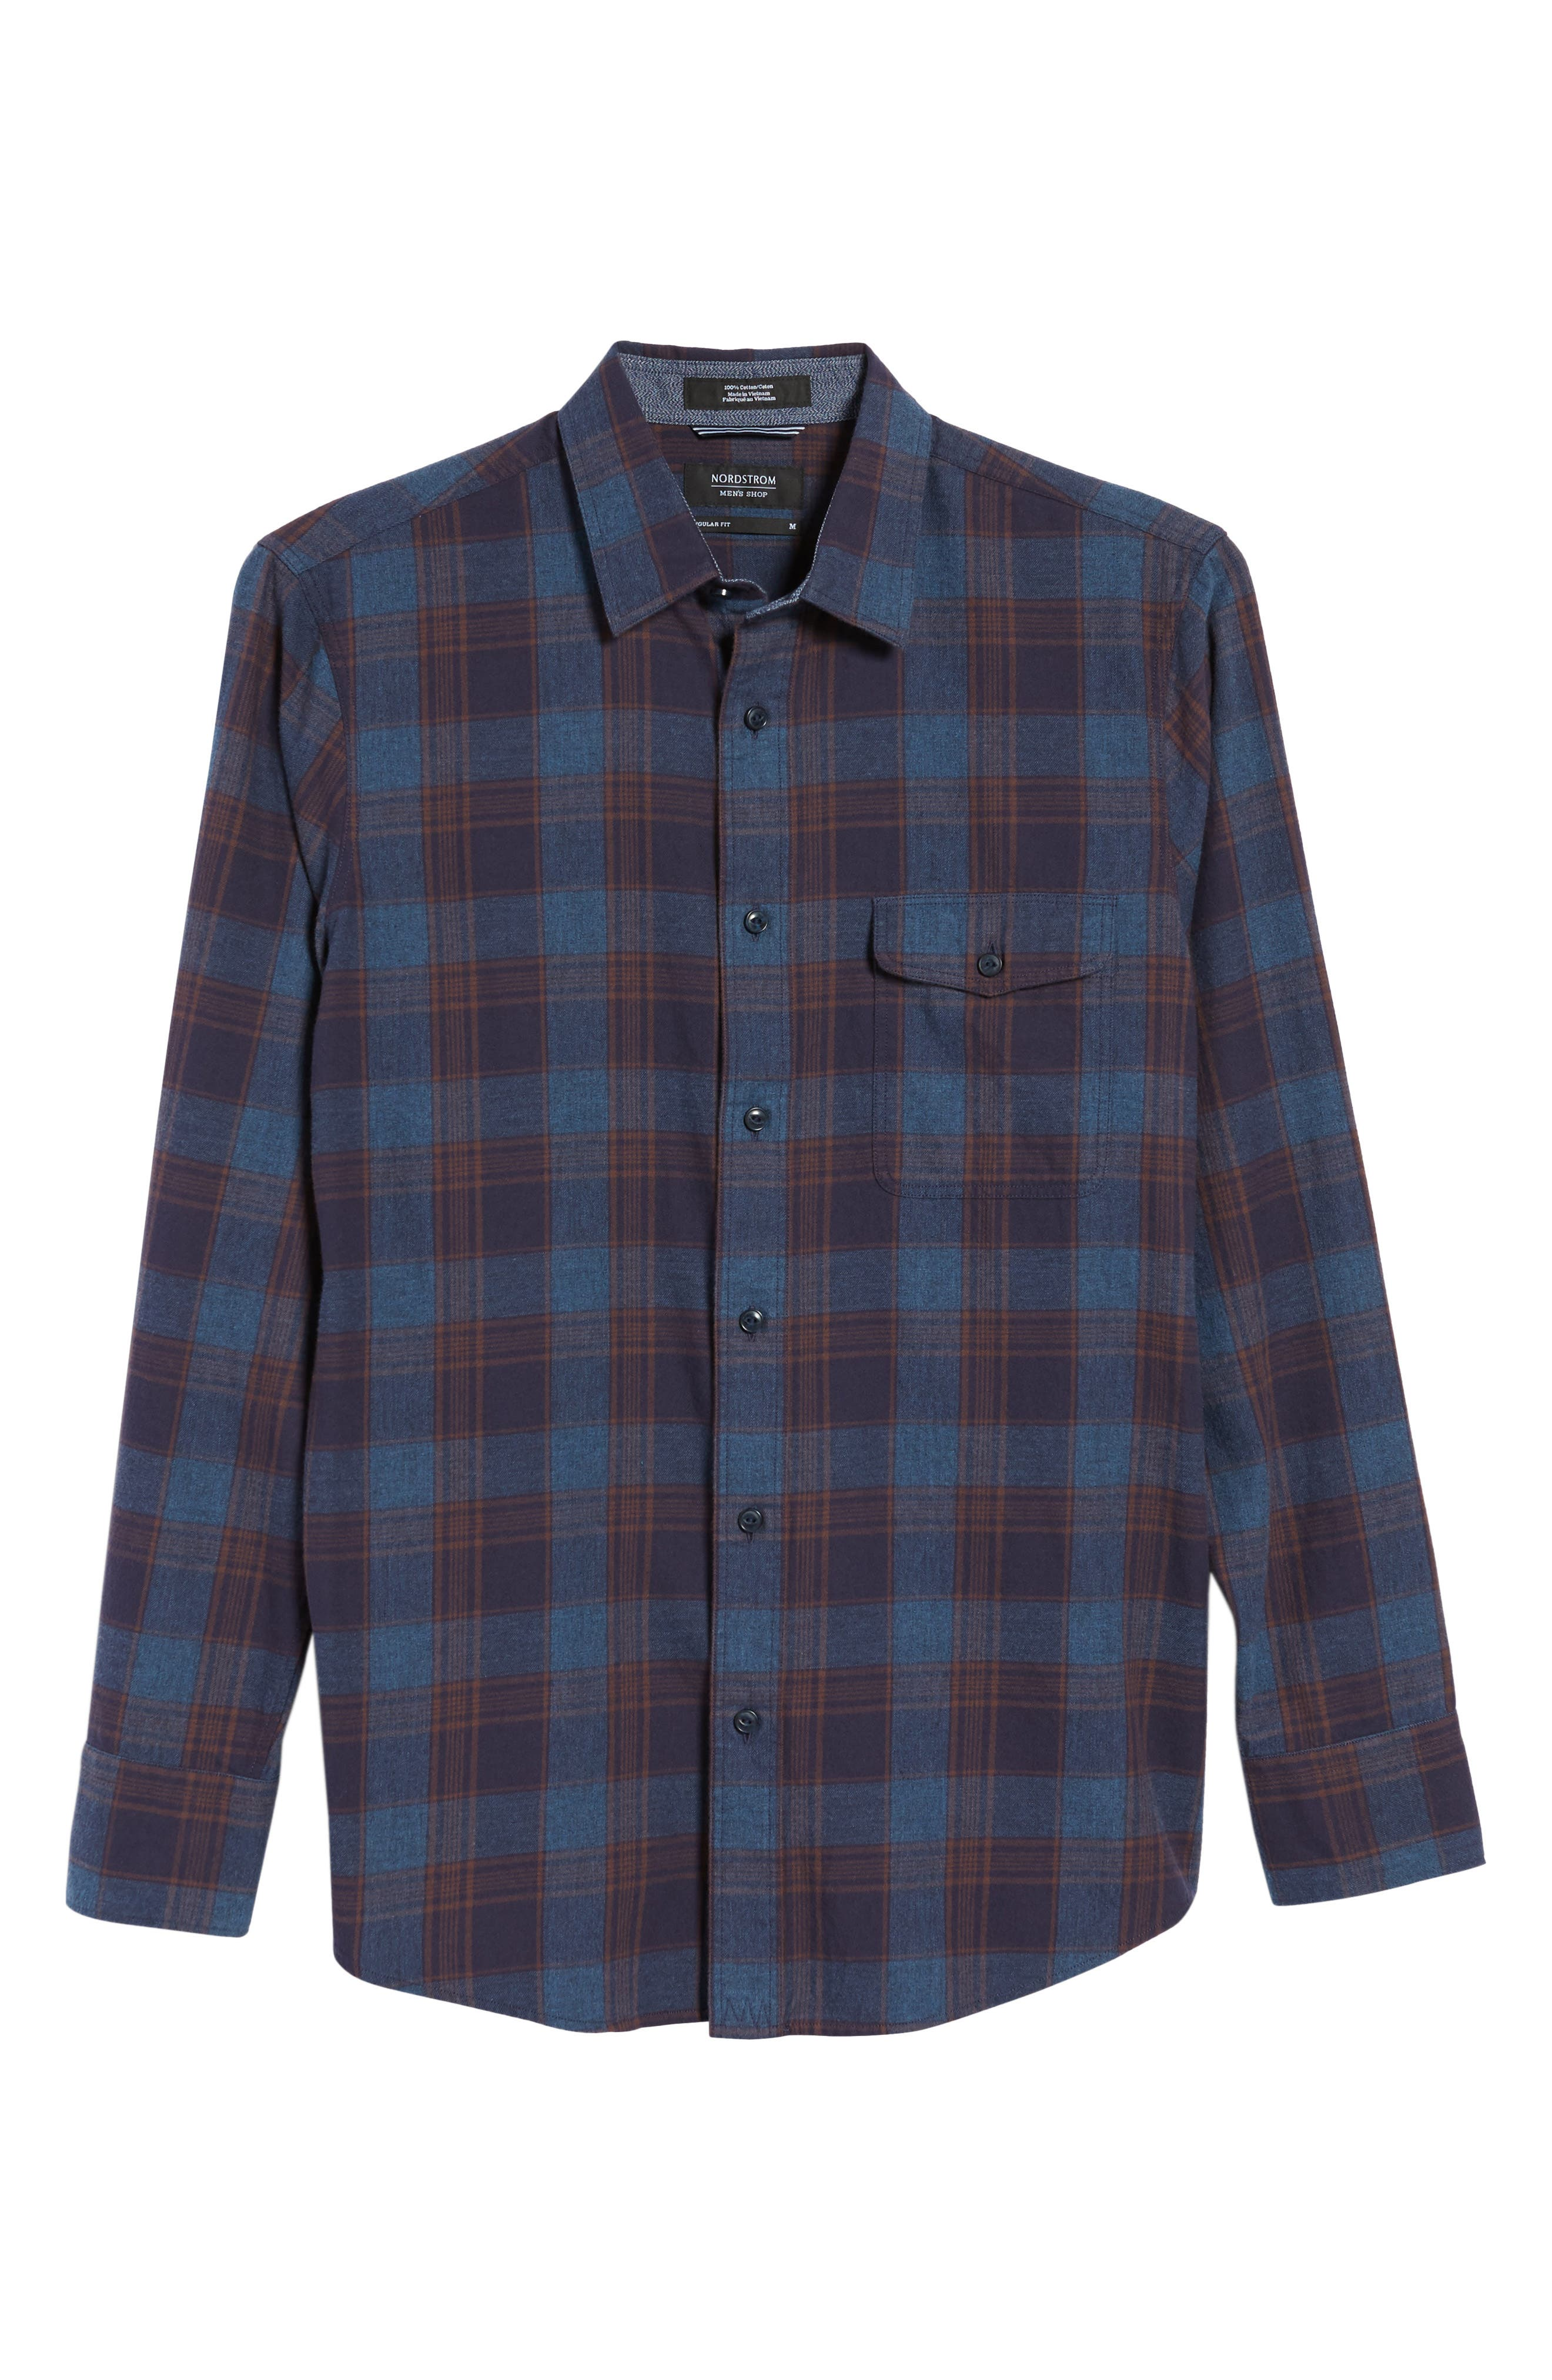 Regular Fit Lumber Check Flannel Shirt,                             Alternate thumbnail 6, color,                             Blue Canal Navy Plaid